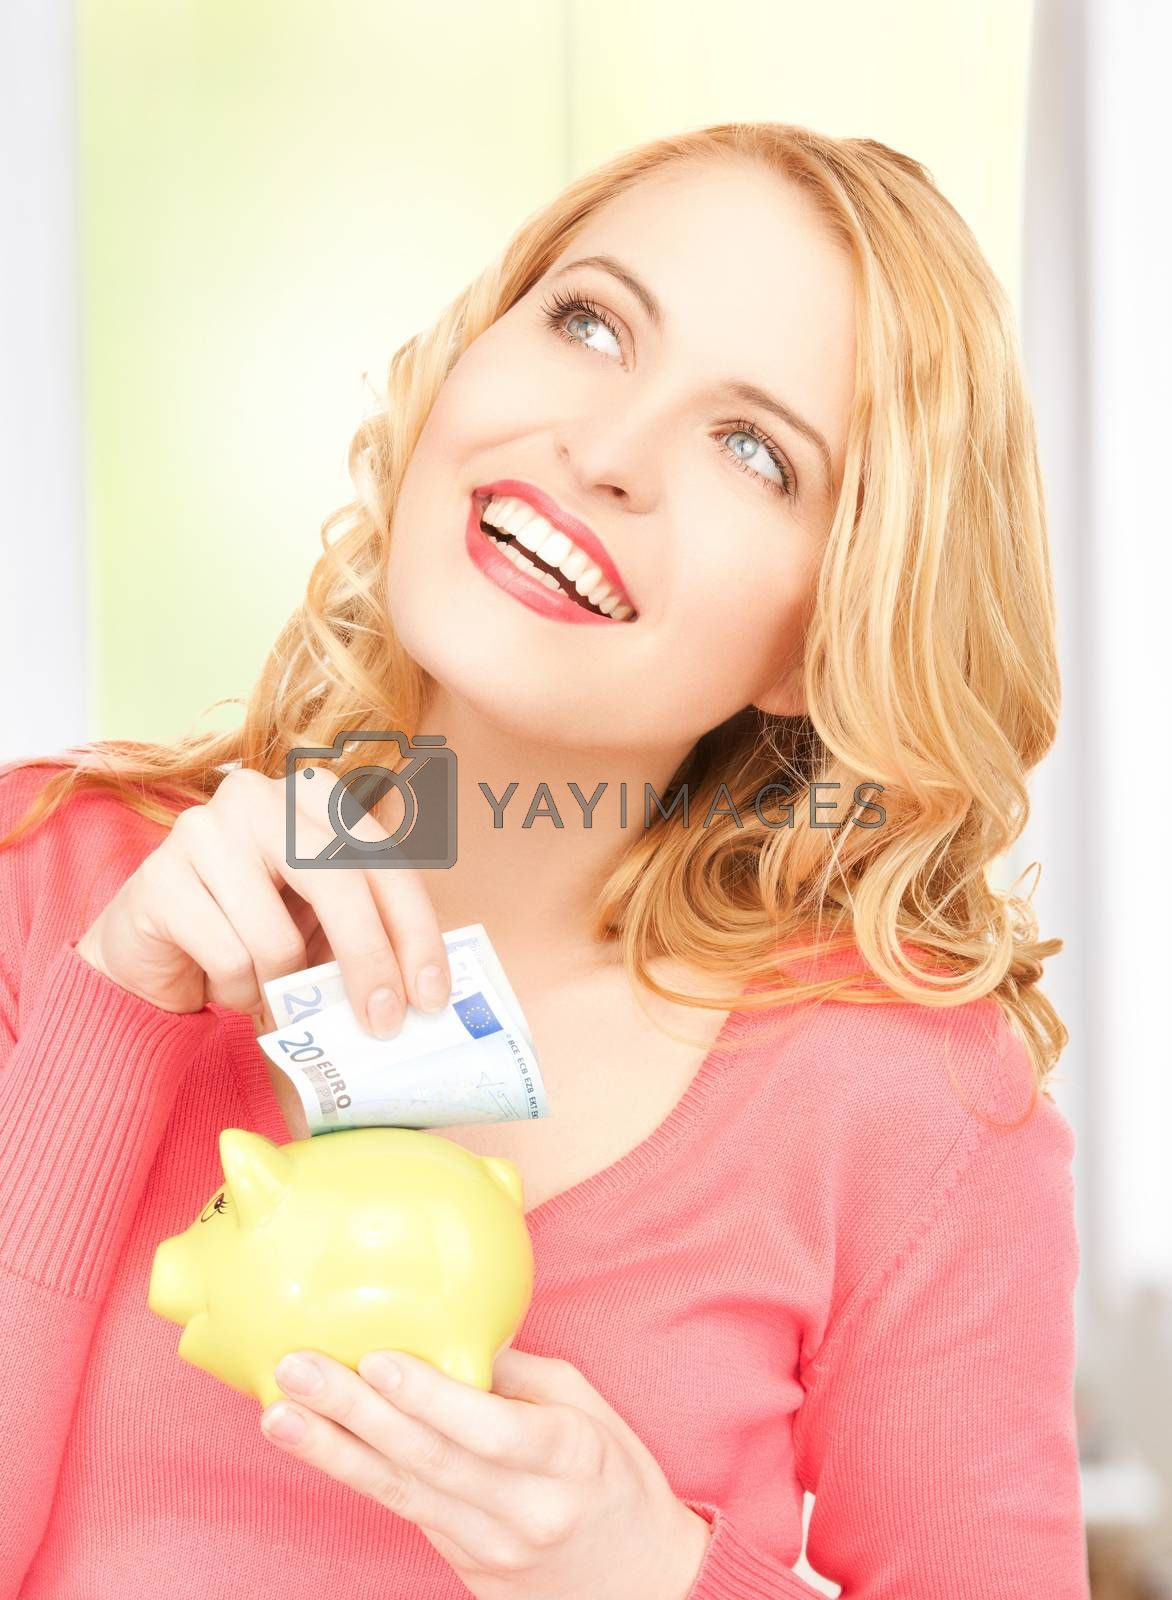 woman with piggy bank and cash money by dolgachov